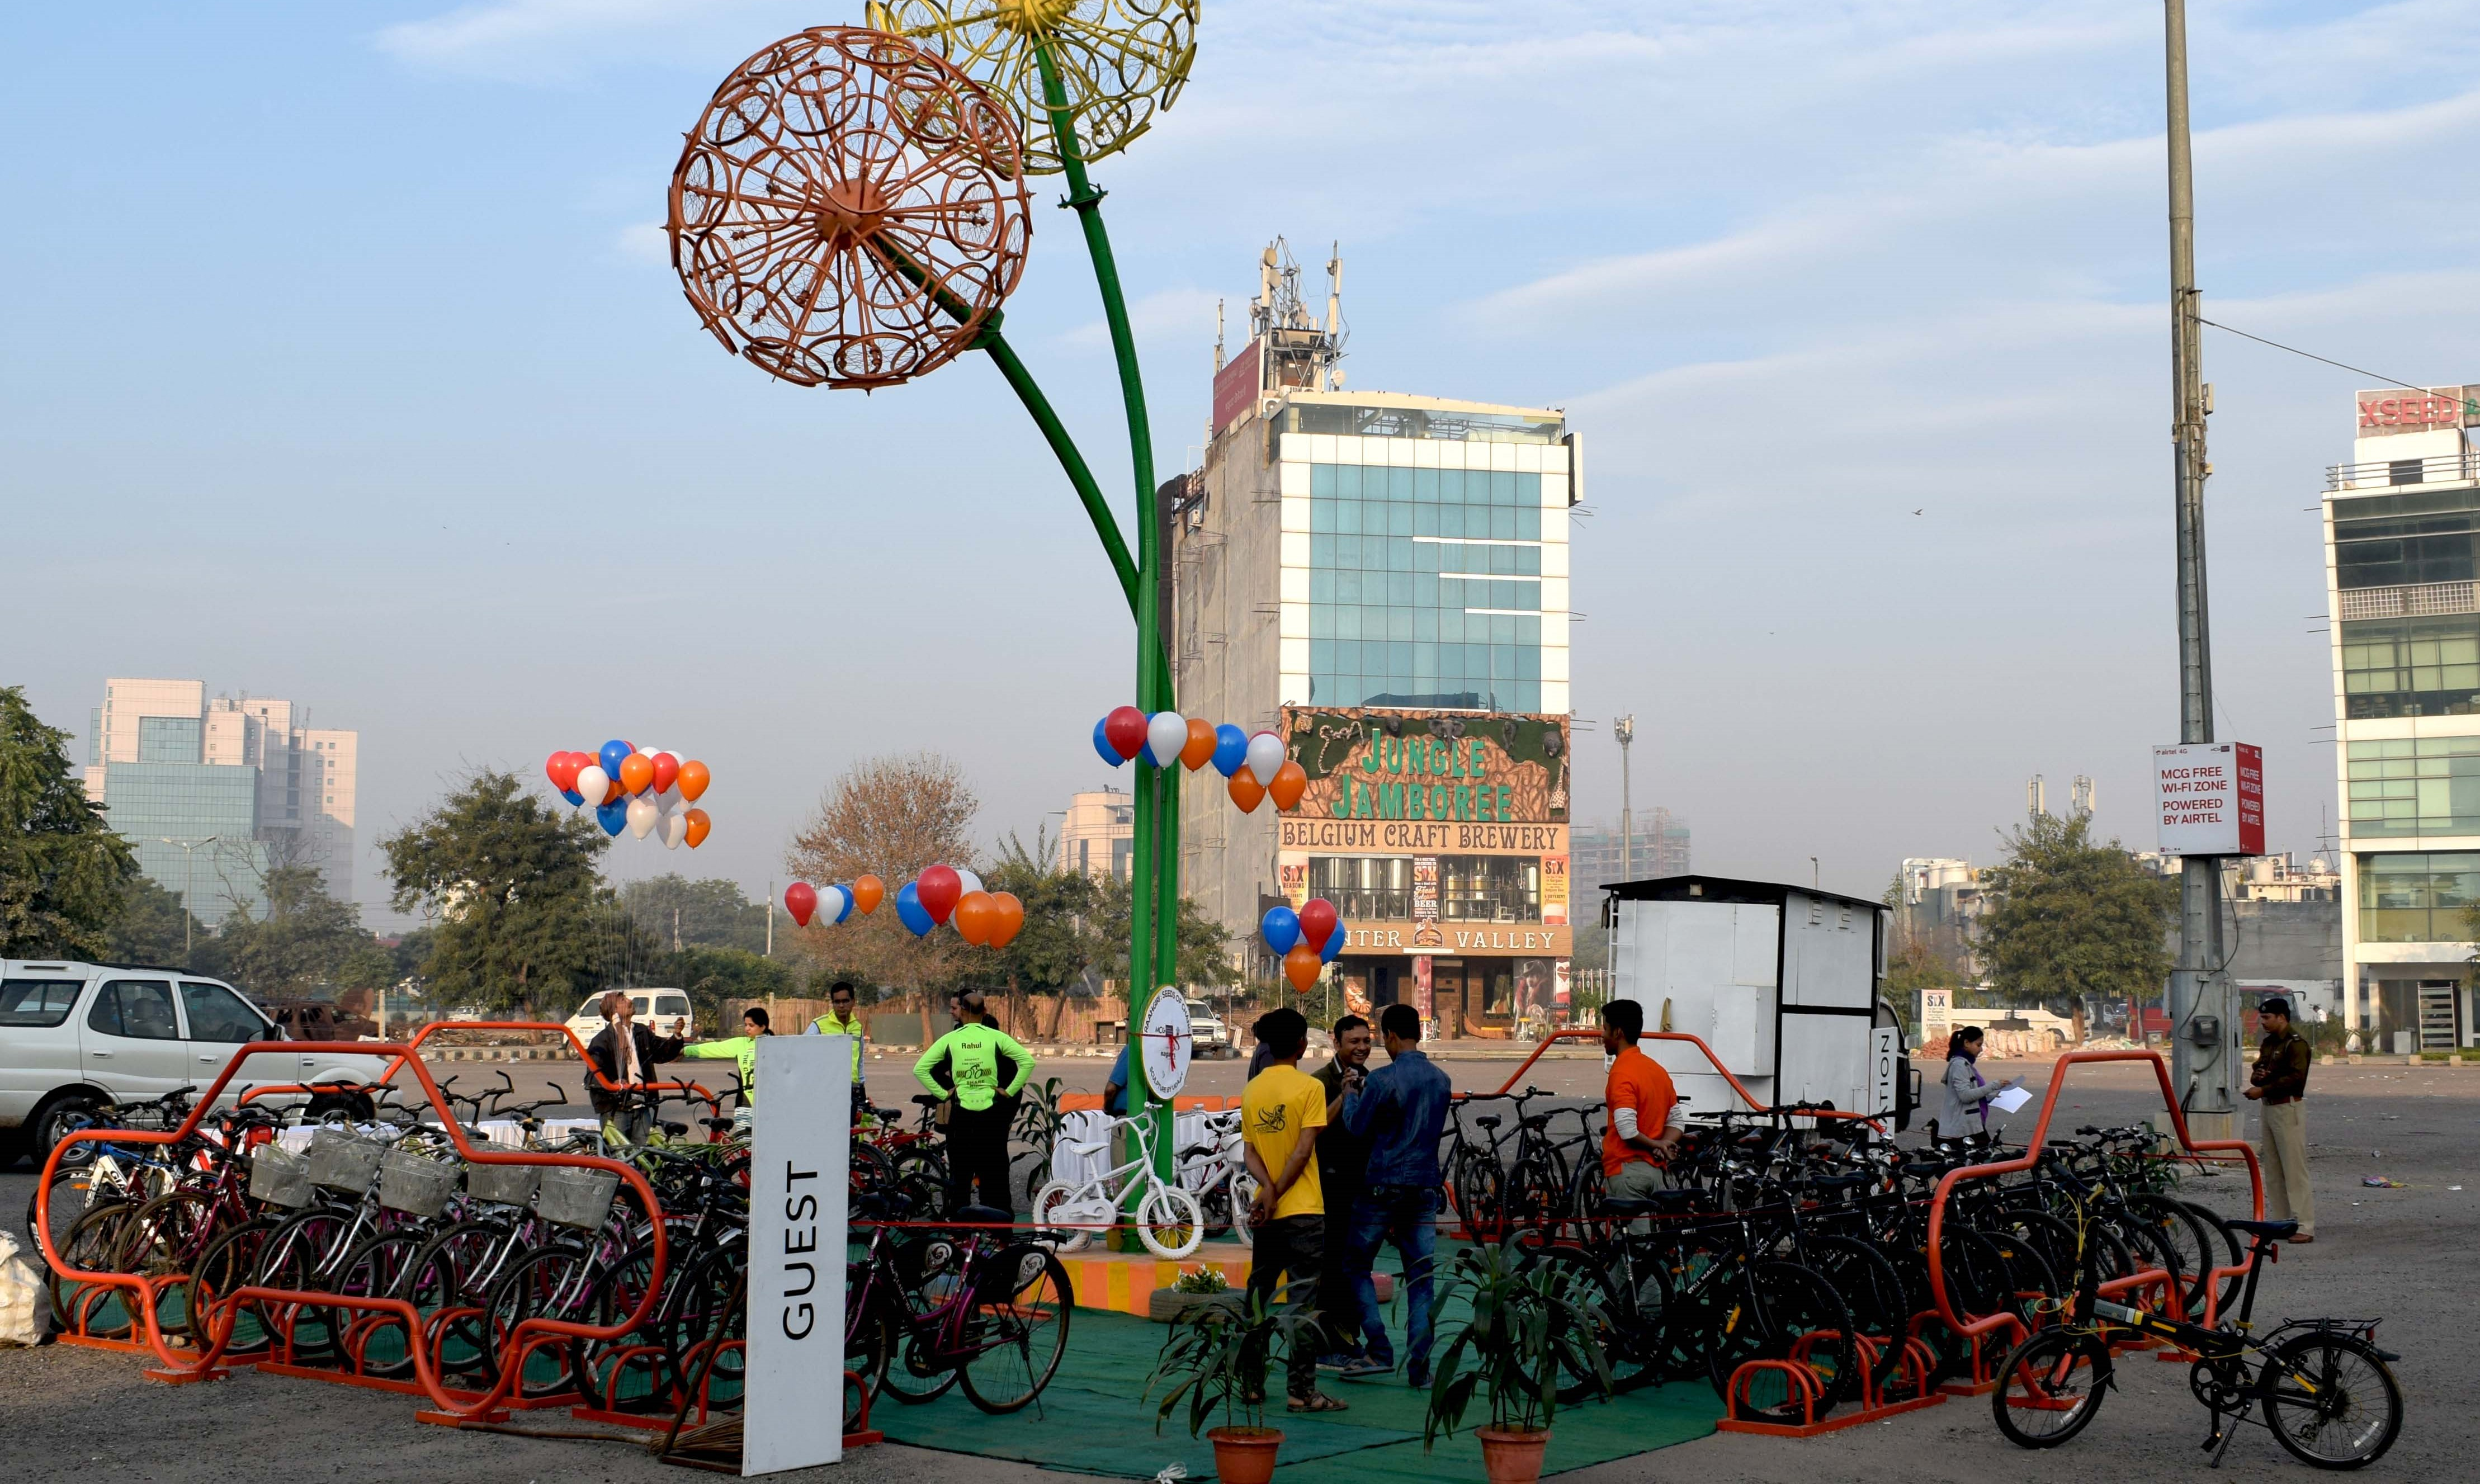 <p>The Seeds for Change project in Gurugram, India, reclaimed four car parking spots to make space for 40 bicycles. Photo by Amit Bhatt/WRI</p>